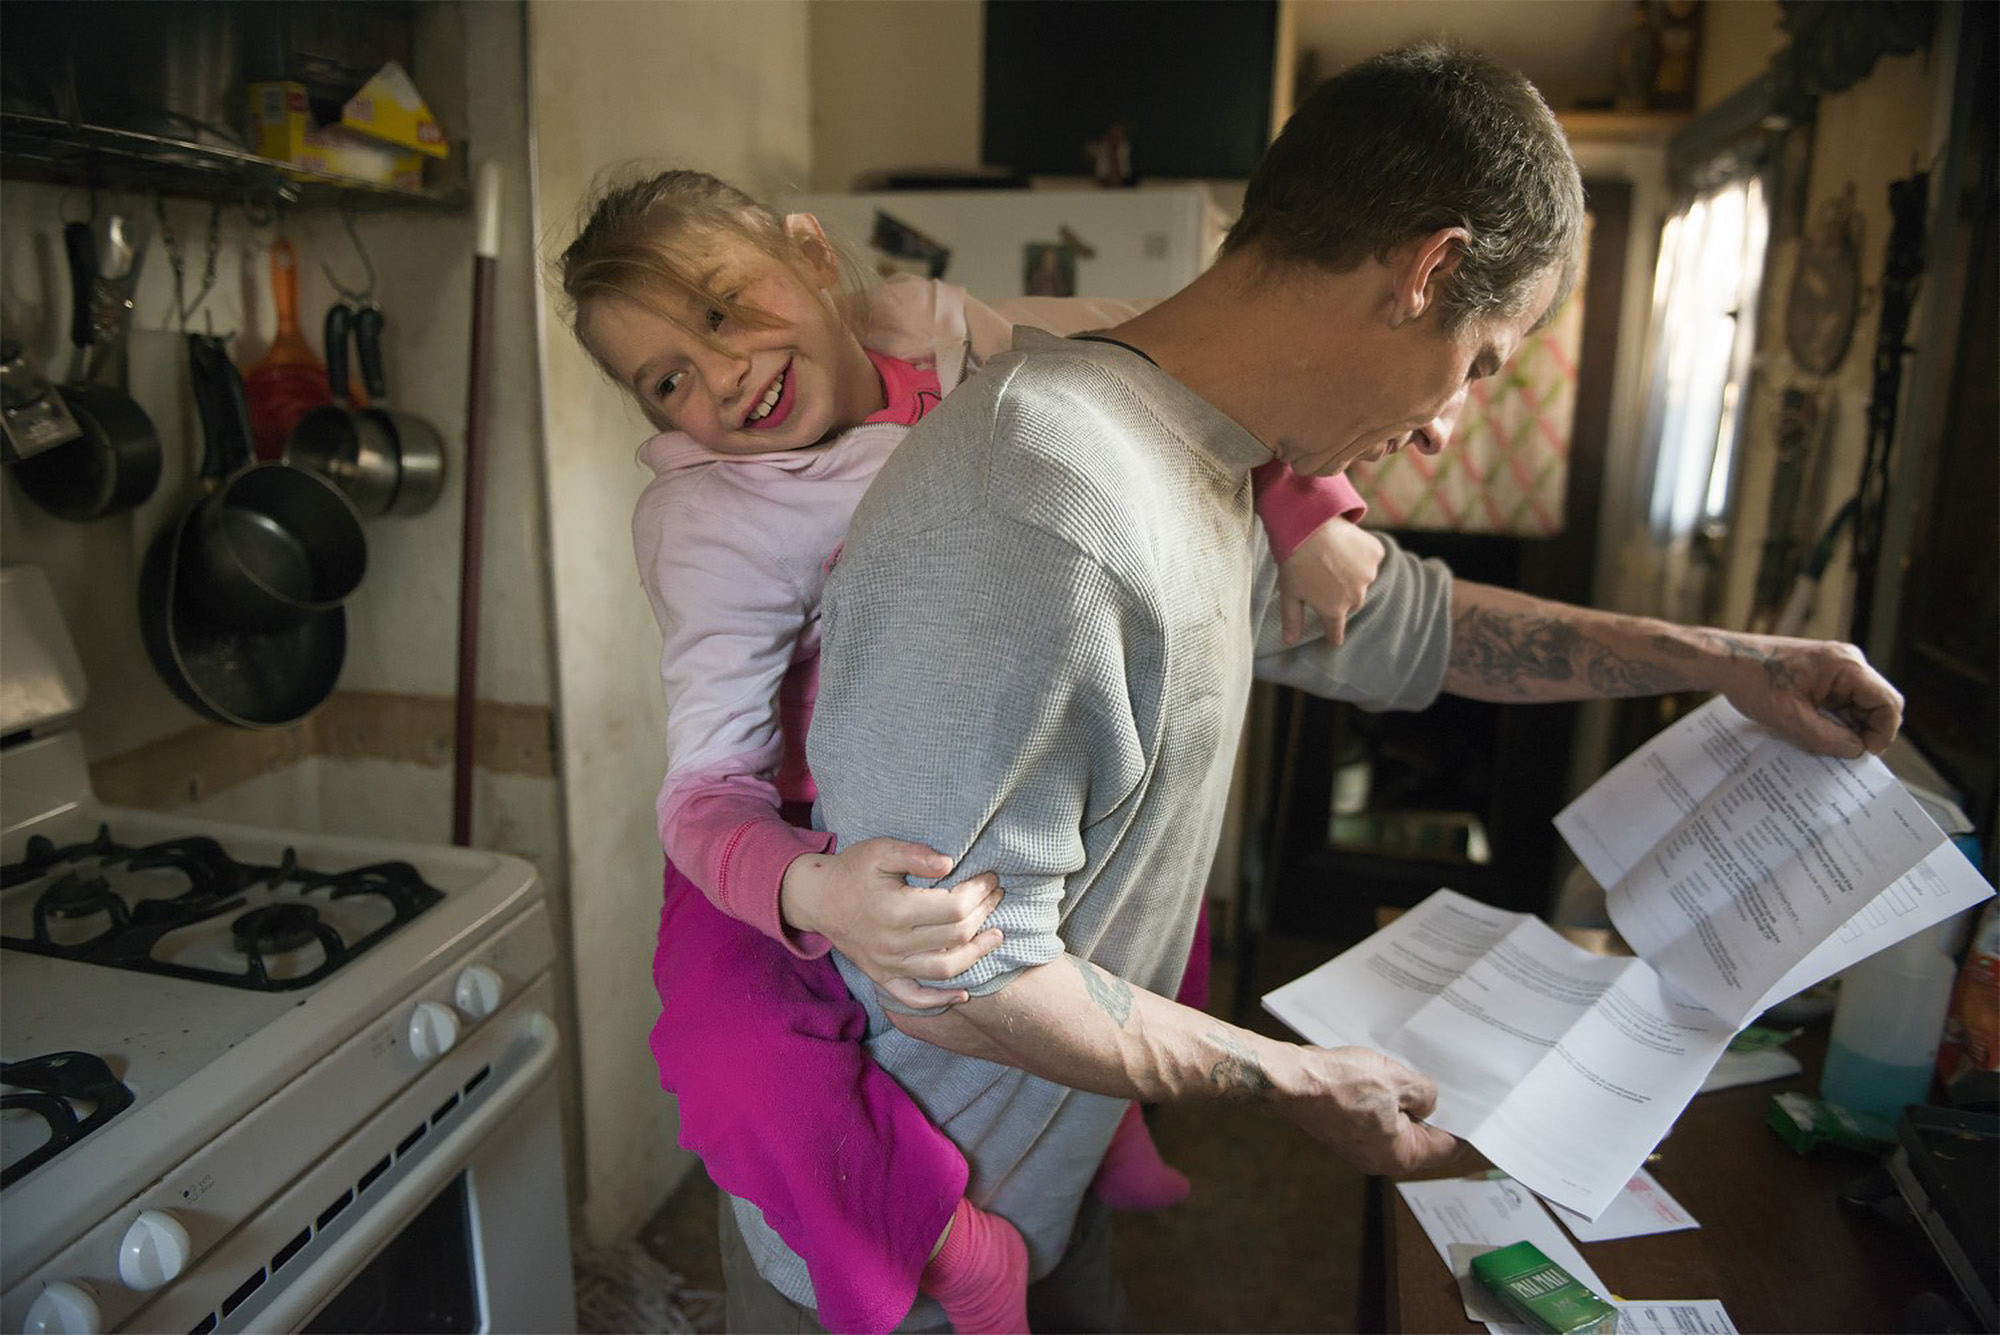 Glenn Jeffries reads a notice to appear in family court while daughter Cathy climbs on his back. Jeffries battles heroin addiction.